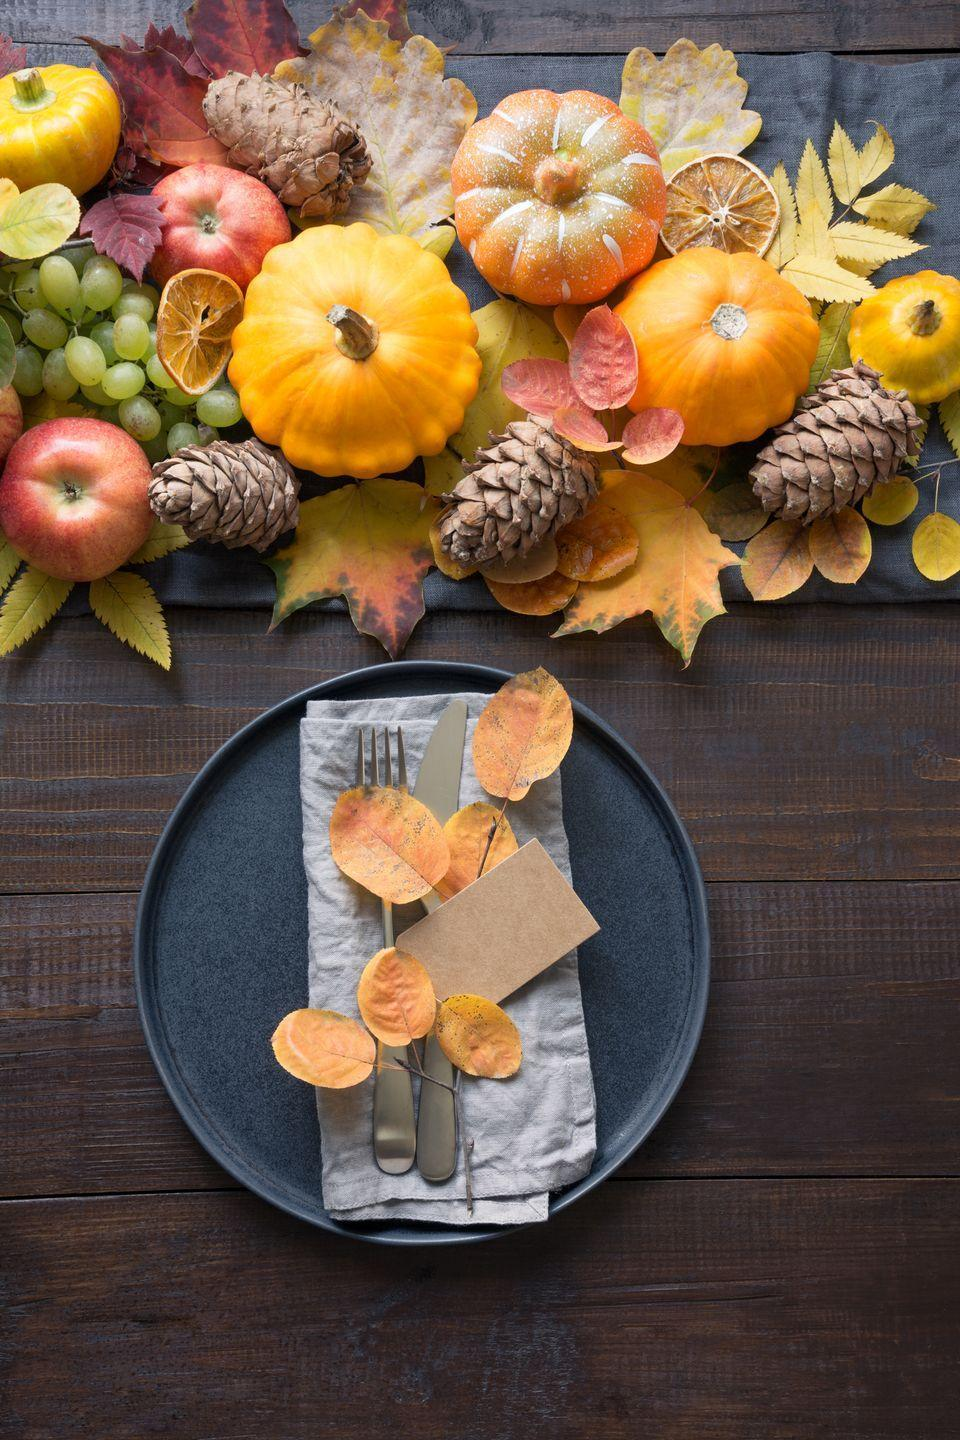 """<p>This centerpiece lets fall's bounty take centerstage, with a mix of fresh and dried fruit, pinecones, and autumn leaves. Extend the theme onto place setting by placing smaller leaves in the center of dinner plates. </p><p><a class=""""link rapid-noclick-resp"""" href=""""https://www.amazon.com/Dehydrated-Blood-Orange-Wheels-slices/dp/B084GB2MMM/ref=sr_1_4?dchild=1&keywords=dried+fruit+slice&qid=1629996278&sr=8-4&tag=syn-yahoo-20&ascsubtag=%5Bartid%7C10050.g.2130%5Bsrc%7Cyahoo-us"""" rel=""""nofollow noopener"""" target=""""_blank"""" data-ylk=""""slk:SHOP DRIED FRUIT SLICES"""">SHOP DRIED FRUIT SLICES</a></p>"""